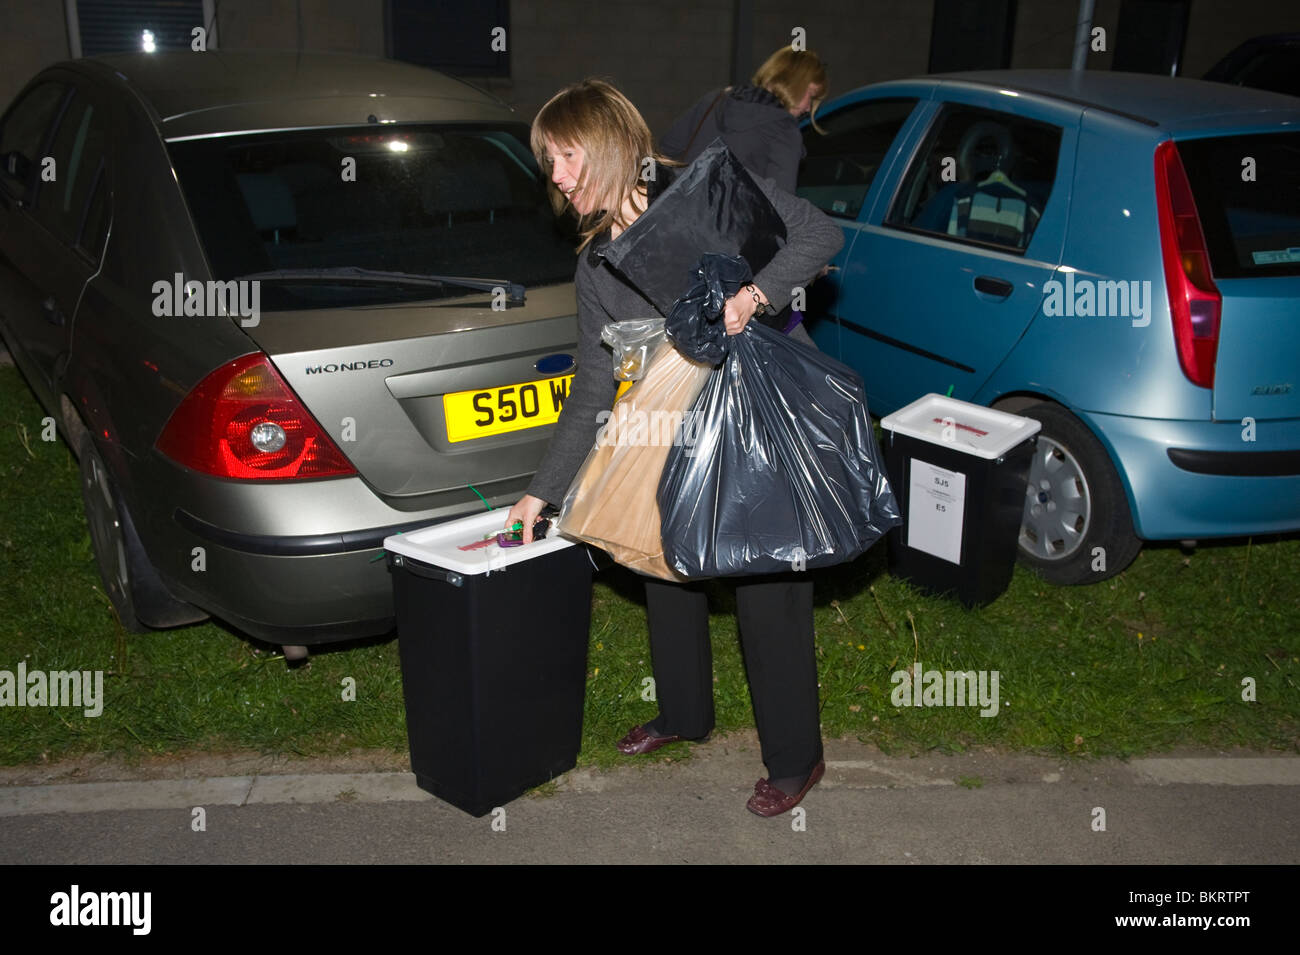 General Election 2010 ballot boxes containing voting papers arrive at the count in Newport South Wales UK - Stock Image